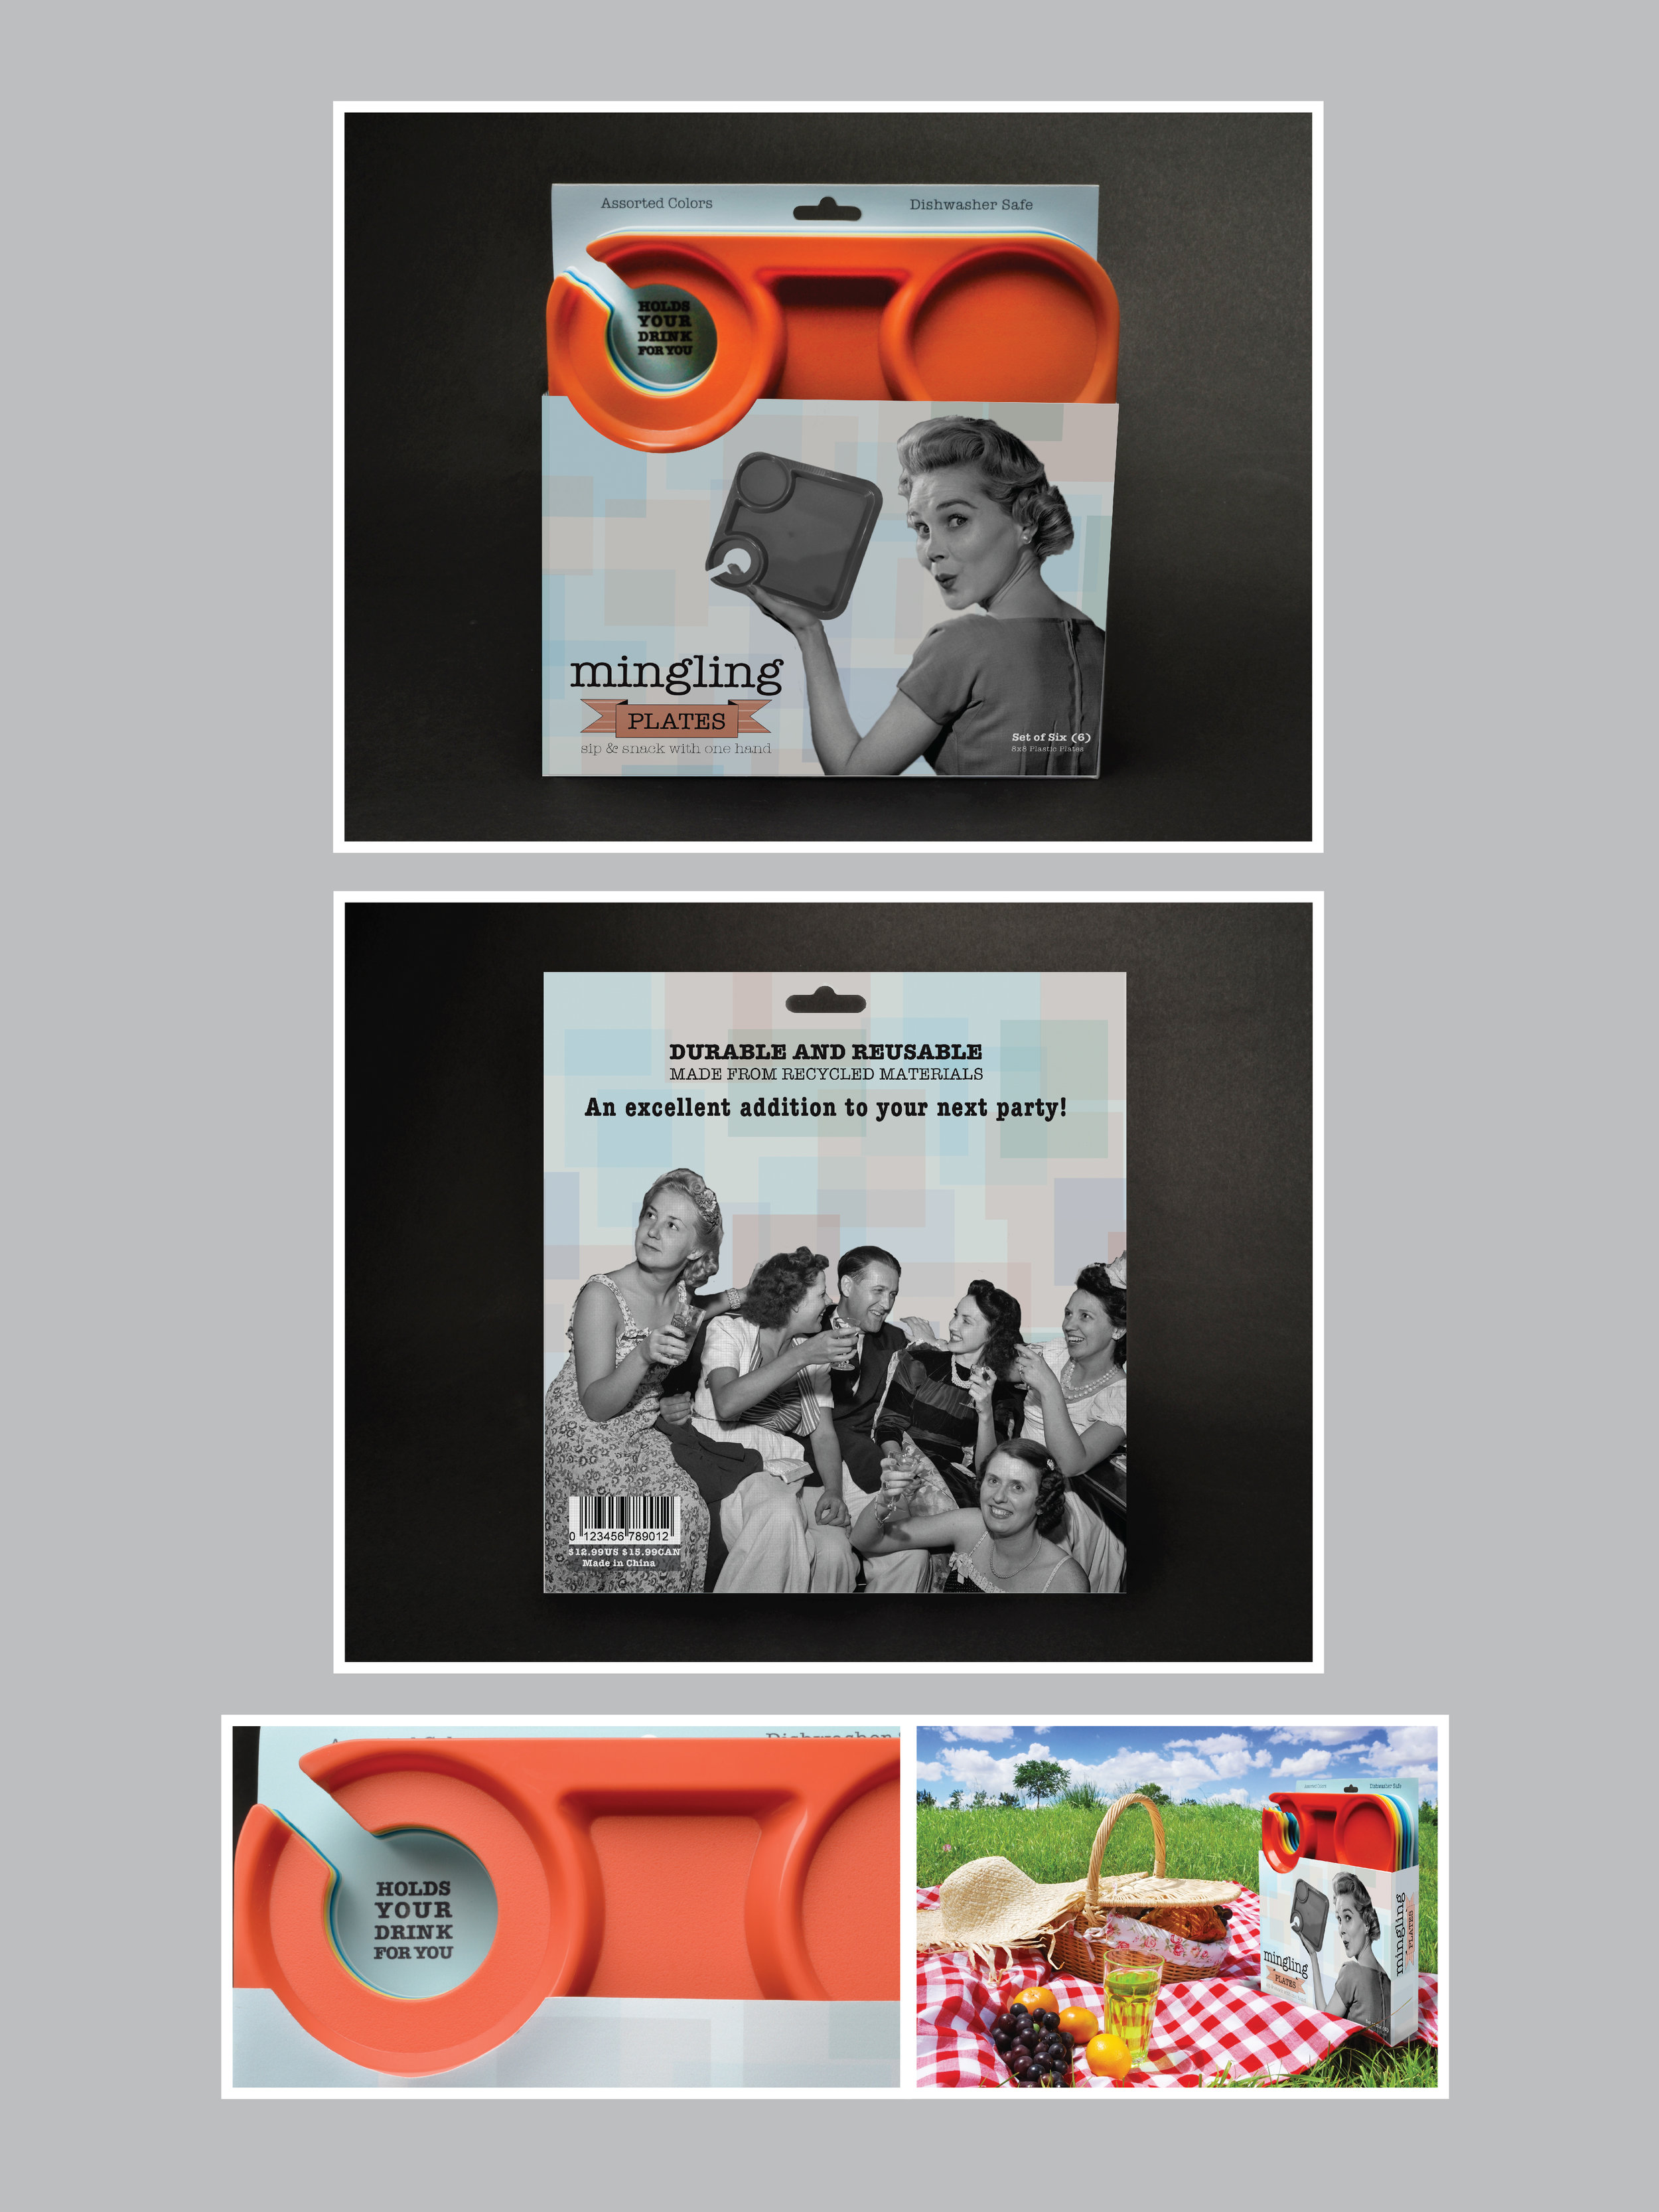 Mingling Plates Package Redesign